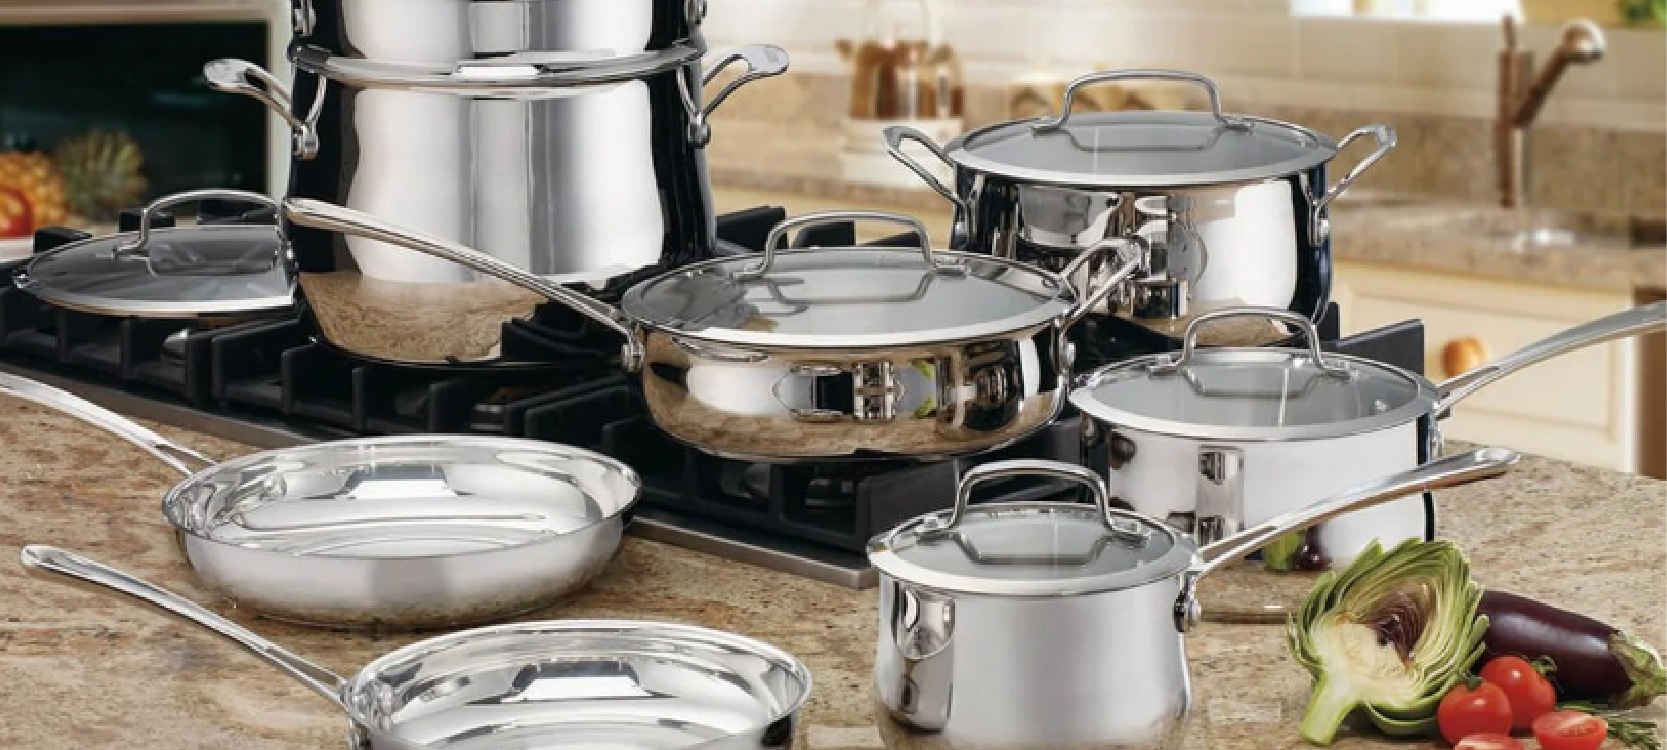 the set of steel duxtop pots and pans lying on the stone kitchen table